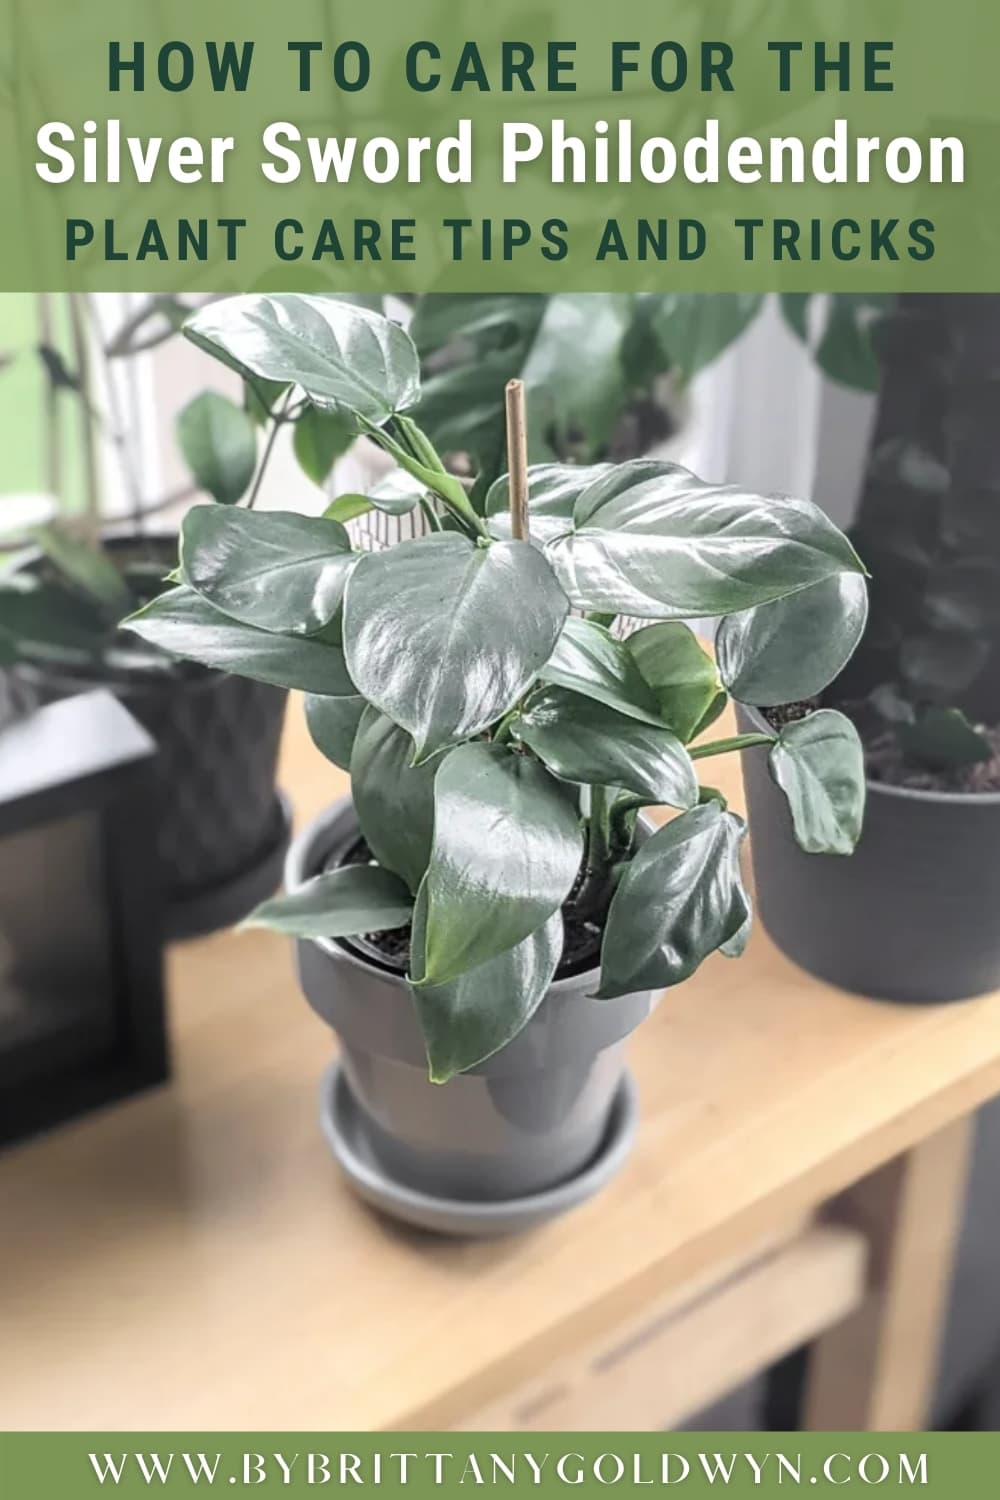 silver sword philodendron with text overlay